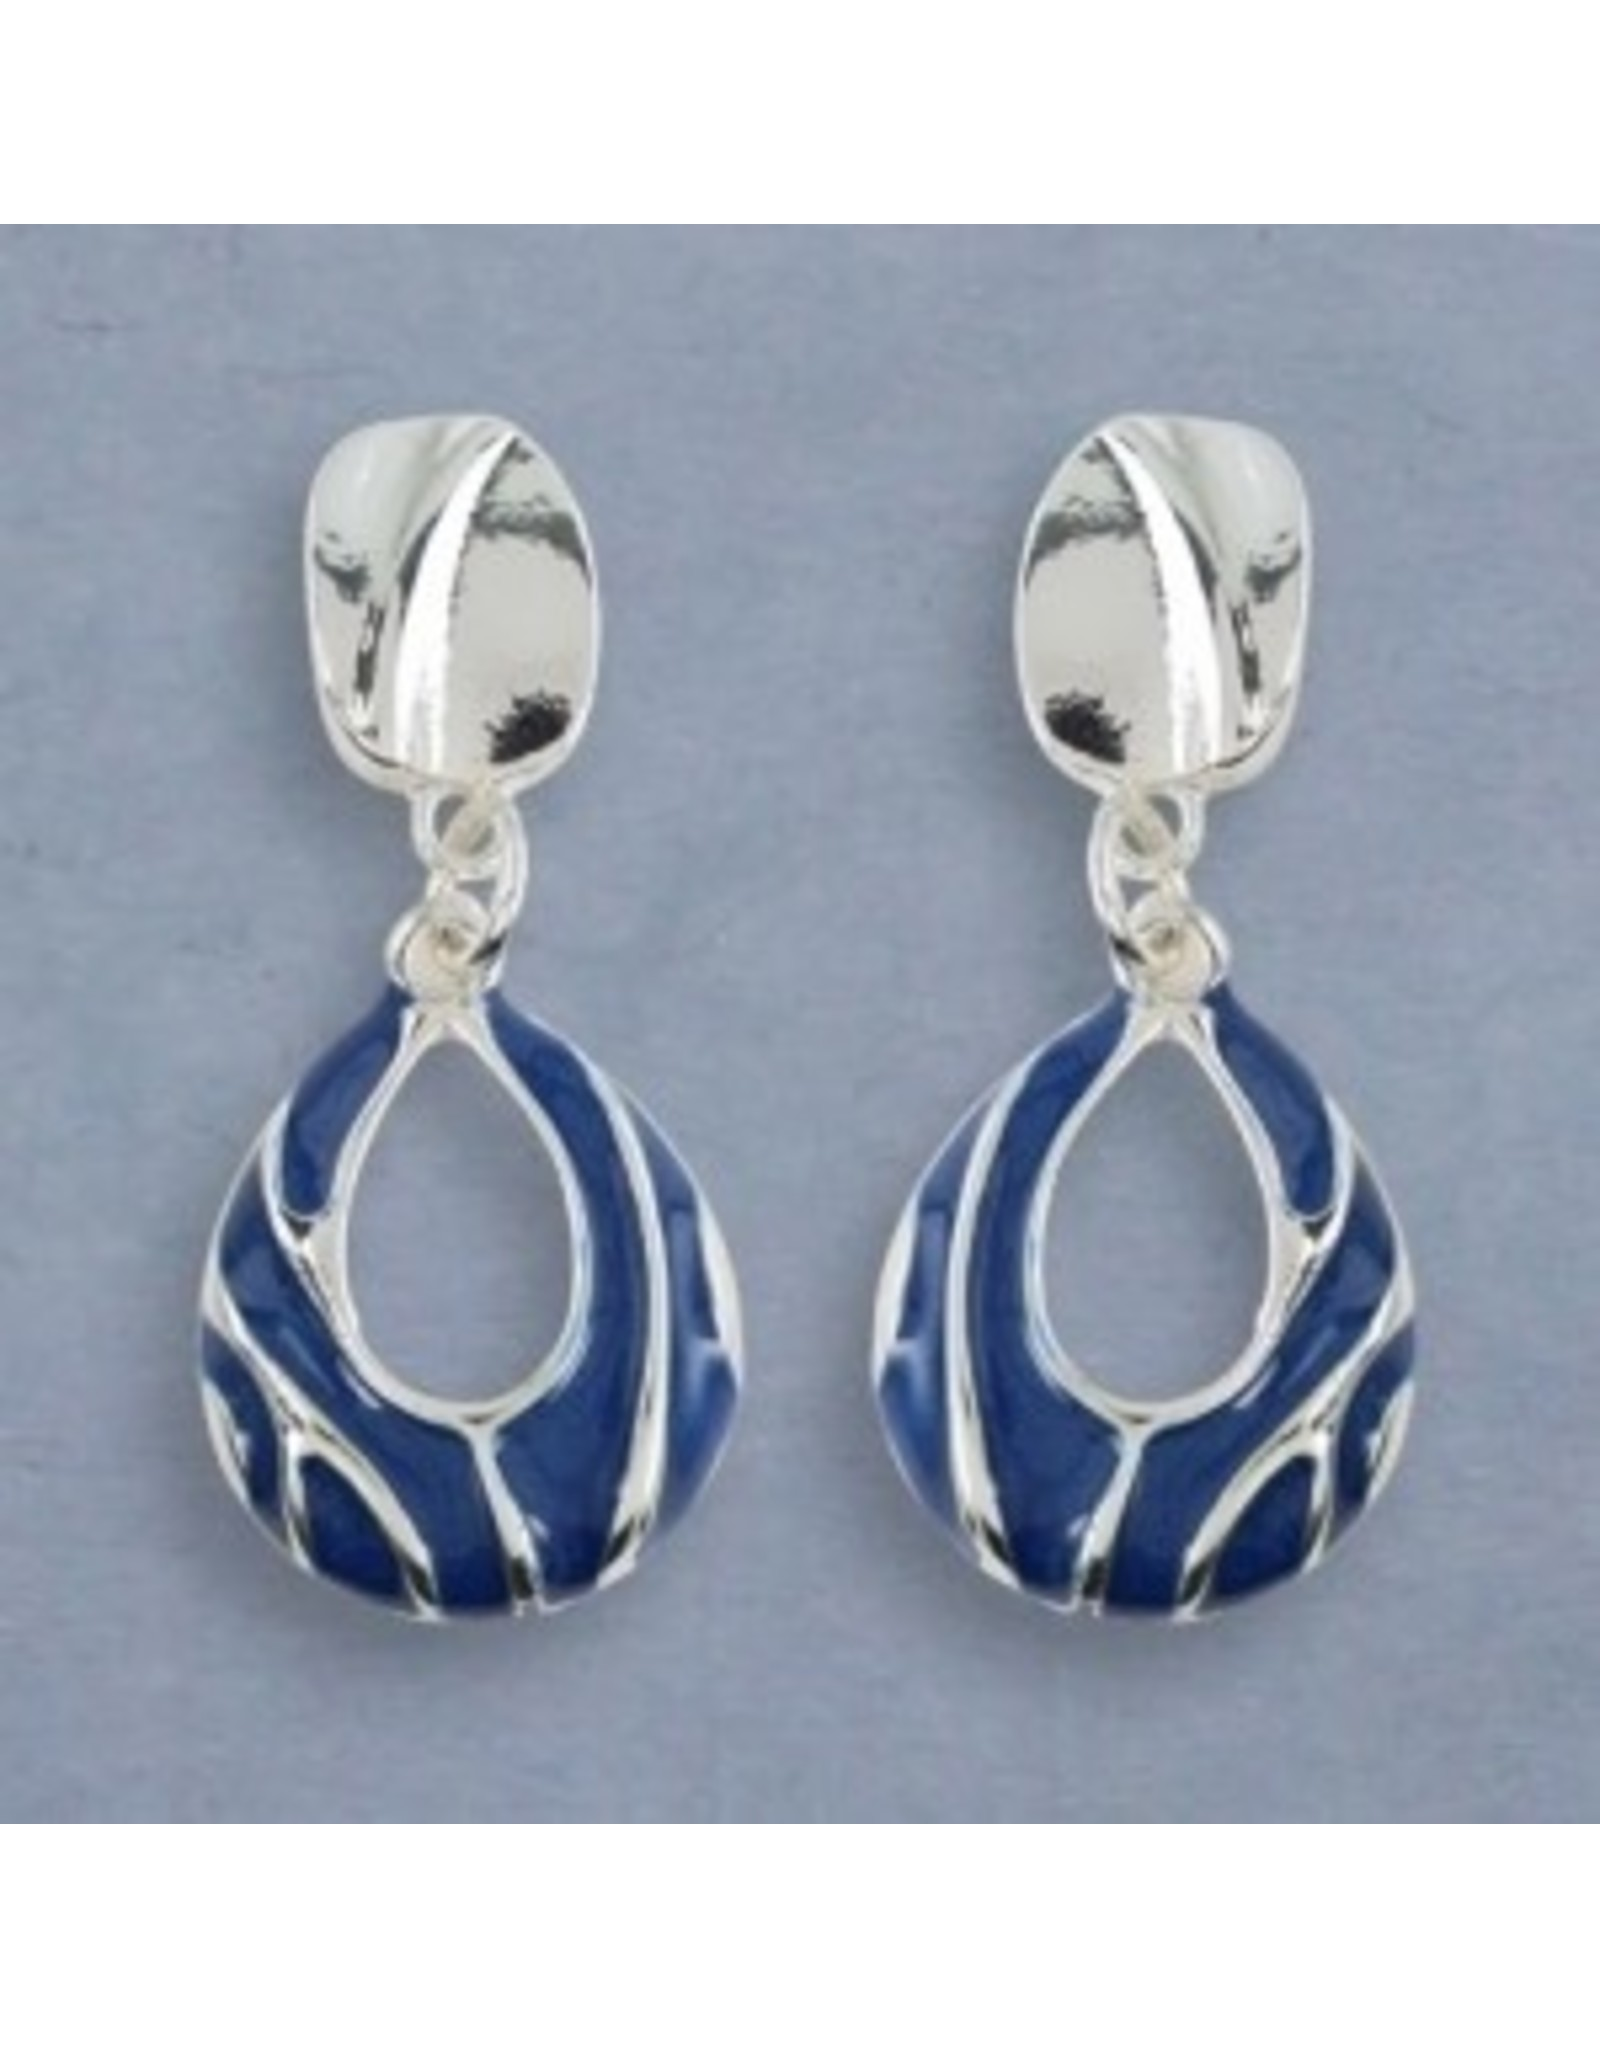 Periwinkle Clip Earrings Blue Enamel and Silver